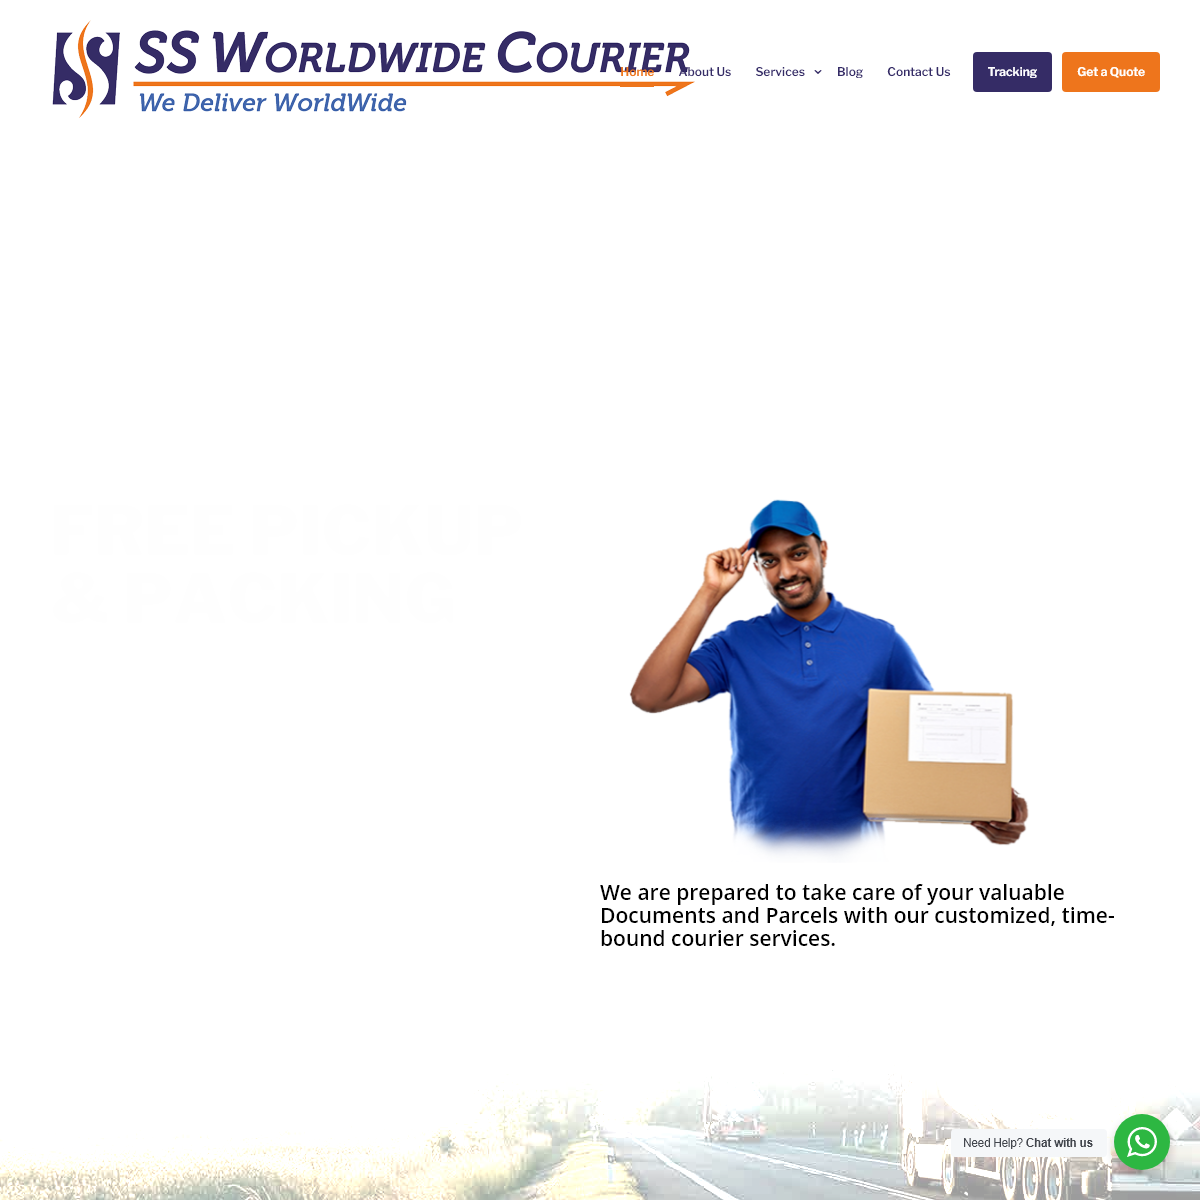 SS Worldwide Courier – We Deliver Worldwide